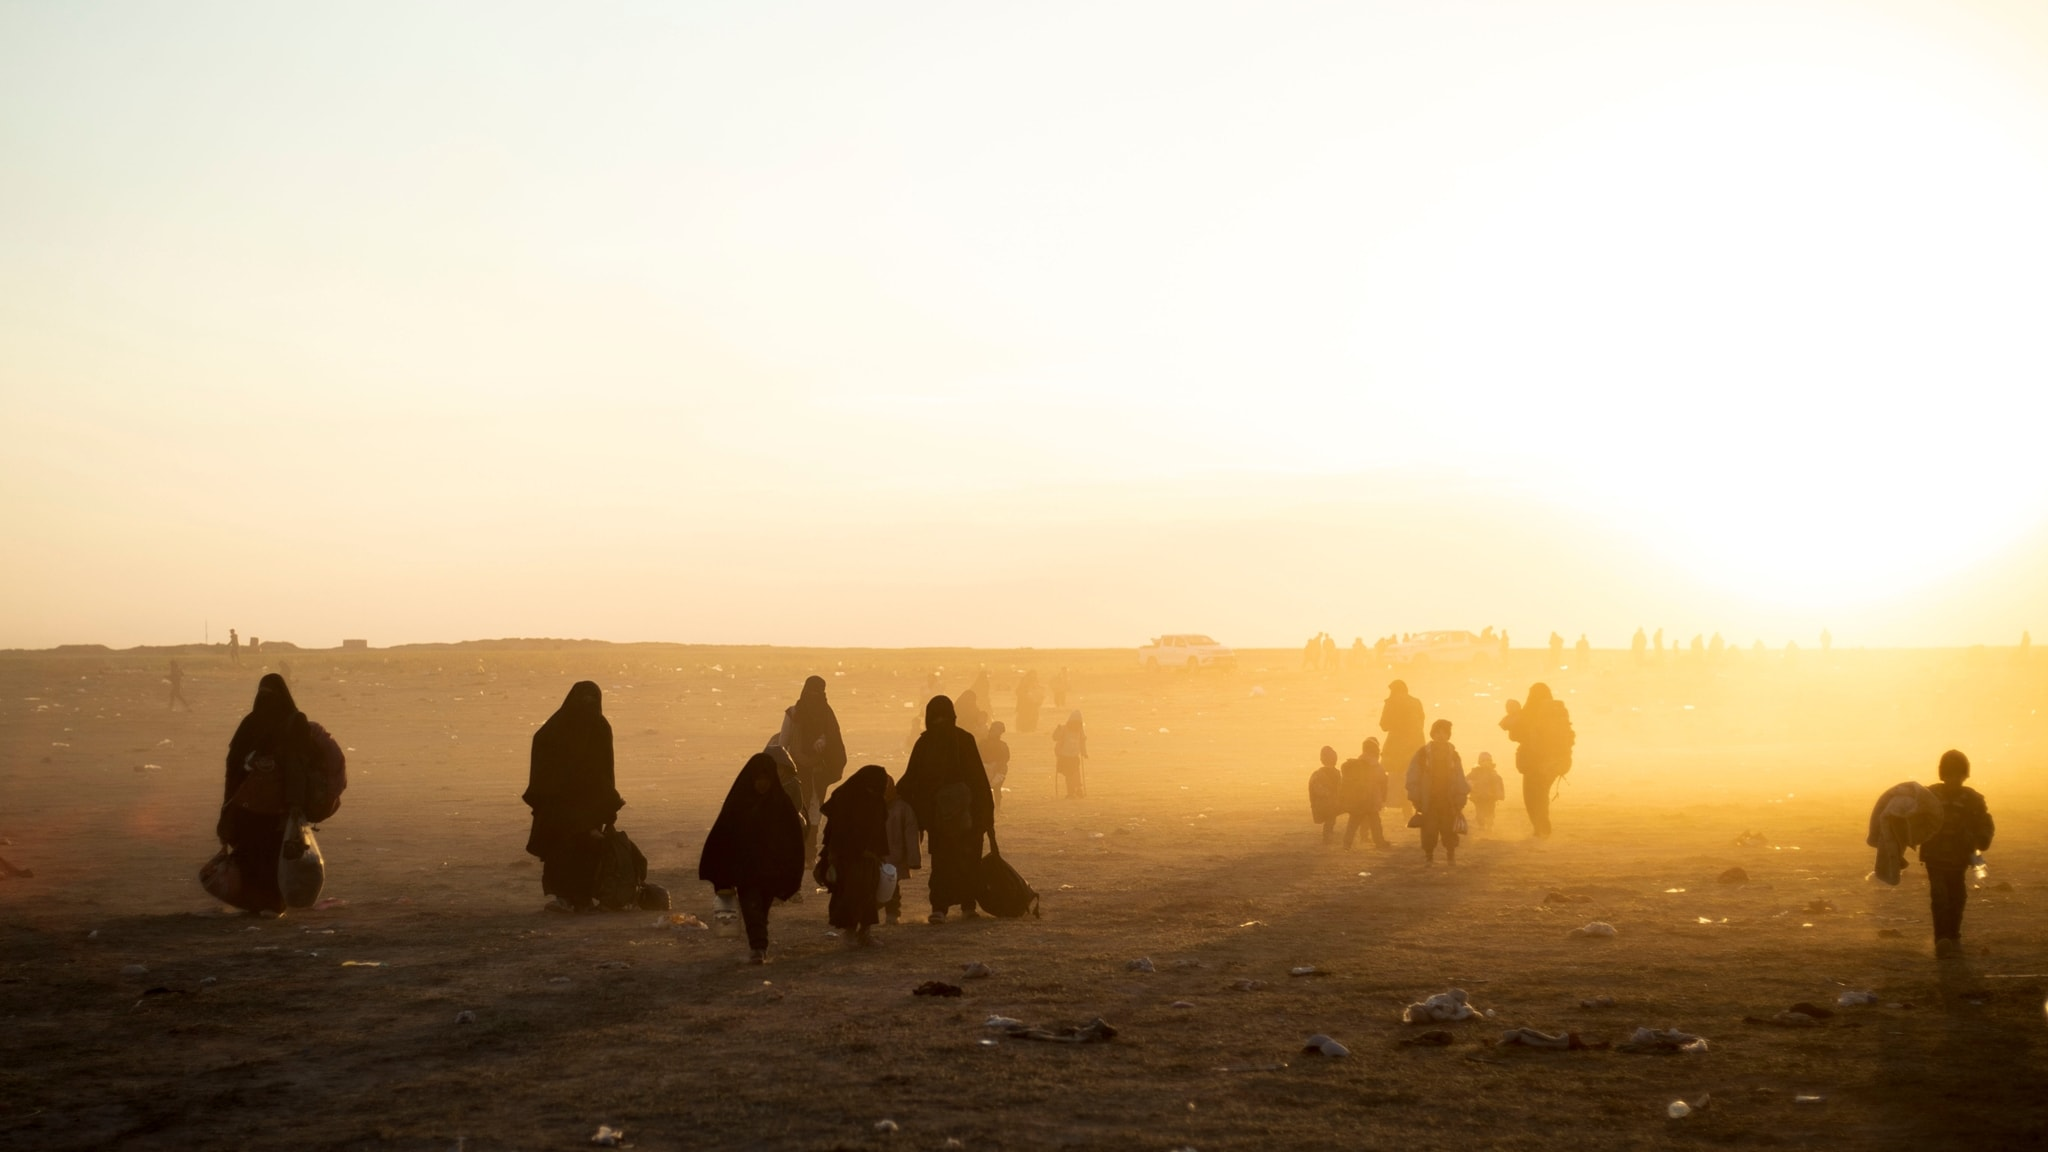 Silhouette of  people carrying bags and wounded through a dry landscape.